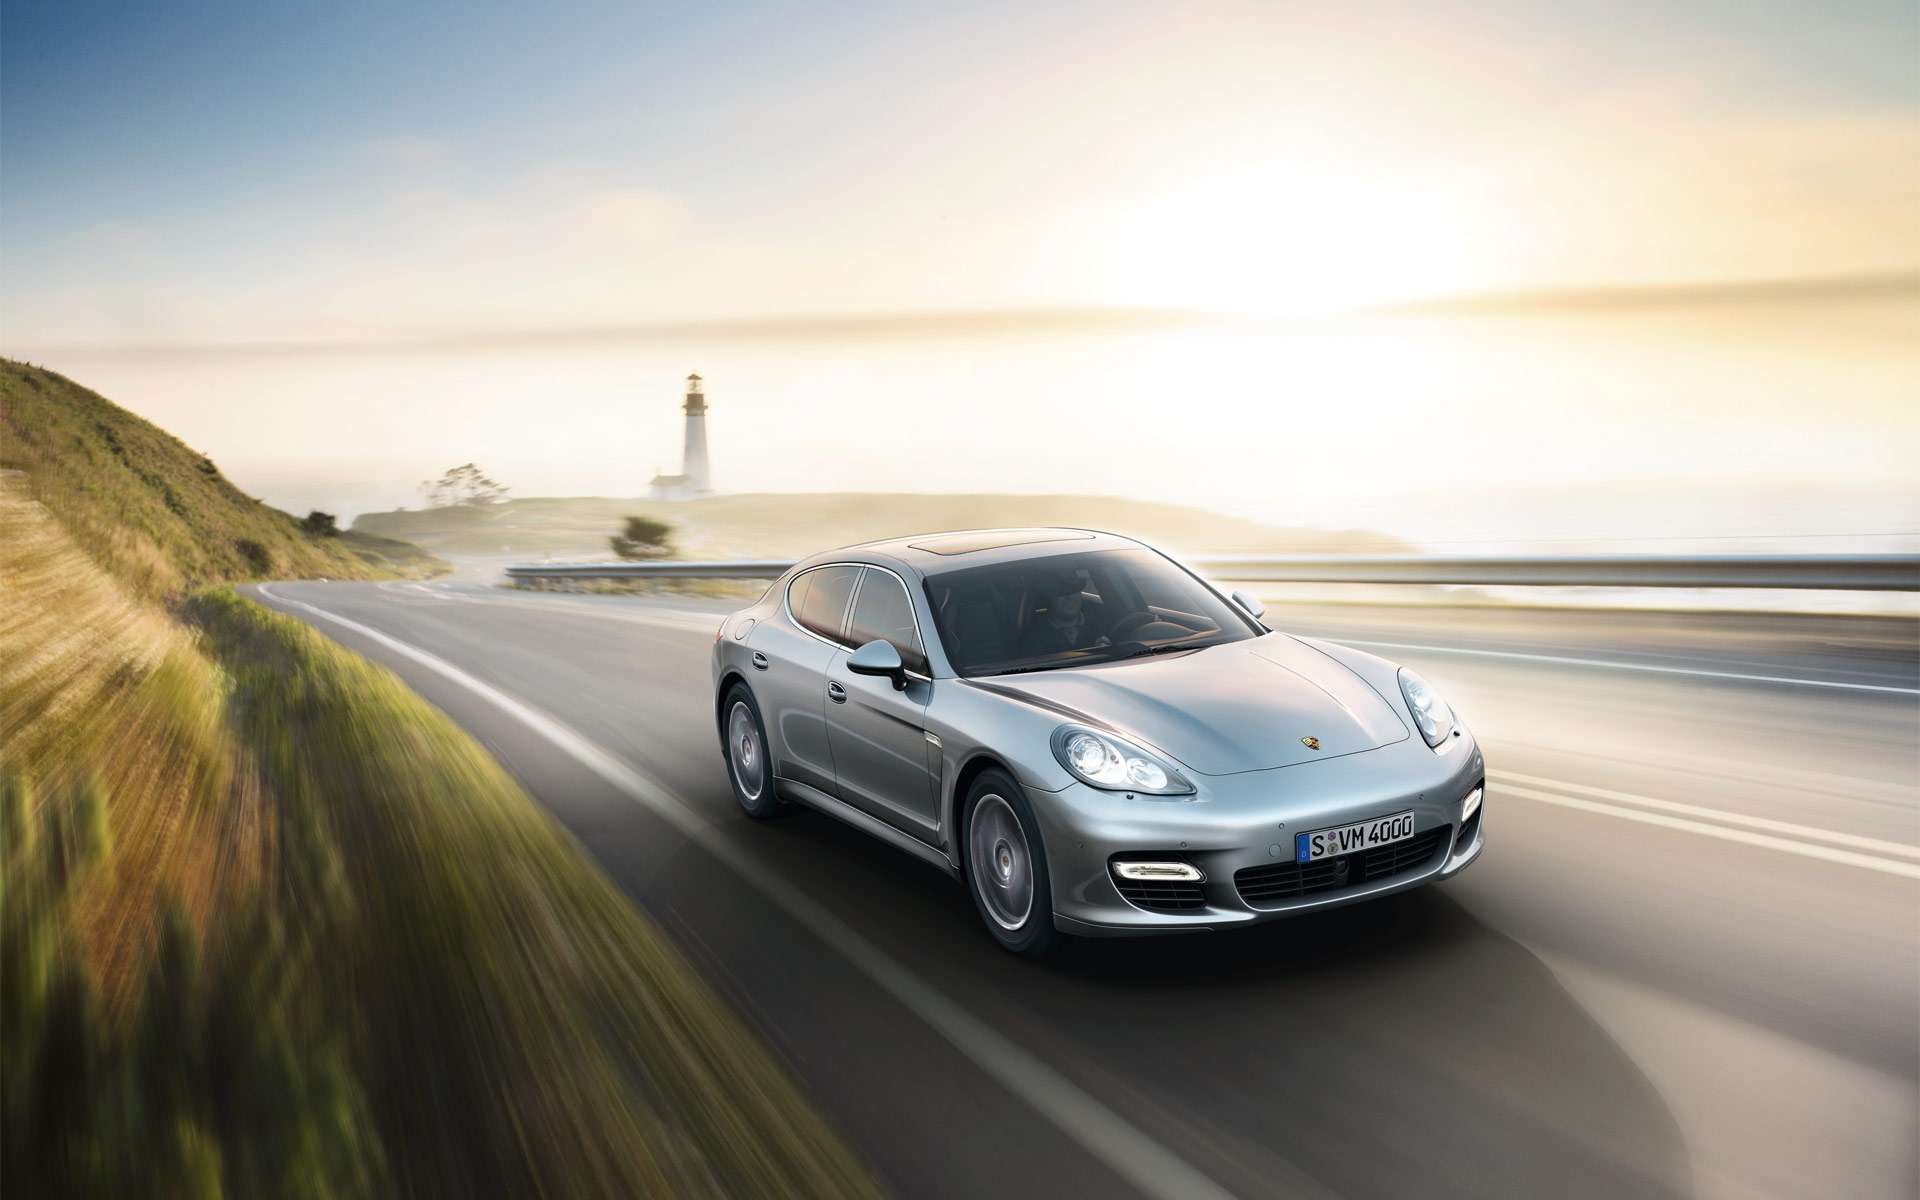 Porsche Panamera Turbo 2 Hd Wallpapers Hd Car Wallpapers 1920x1200